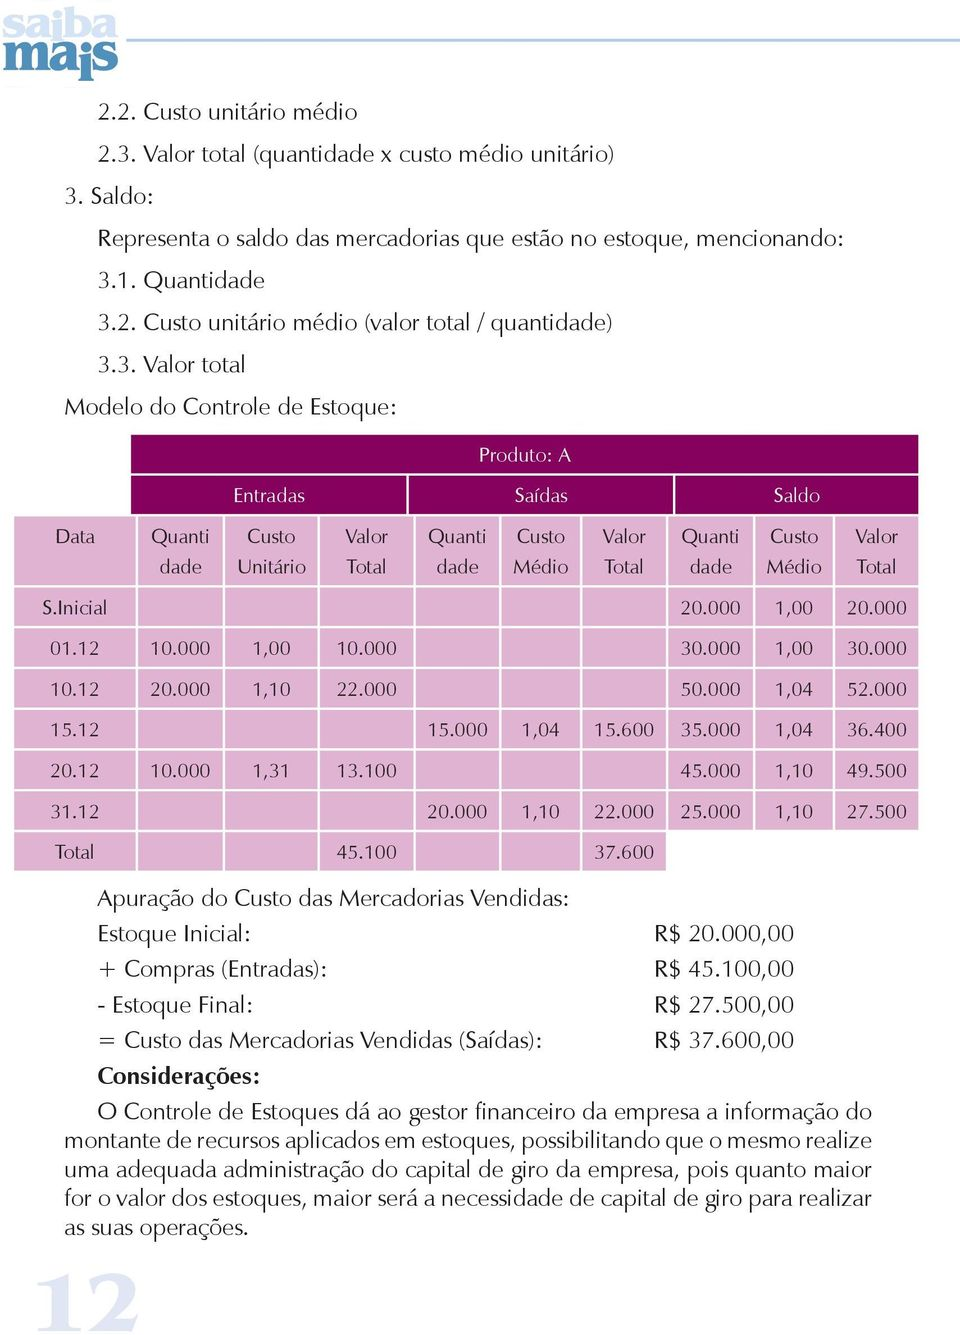 Inicial 20.000 1,00 20.000 01.12 10.000 1,00 10.000 30.000 1,00 30.000 10.12 20.000 1,10 22.000 50.000 1,04 52.000 15.12 15.000 1,04 15.600 35.000 1,04 36.400 20.12 10.000 1,31 13.100 45.000 1,10 49.